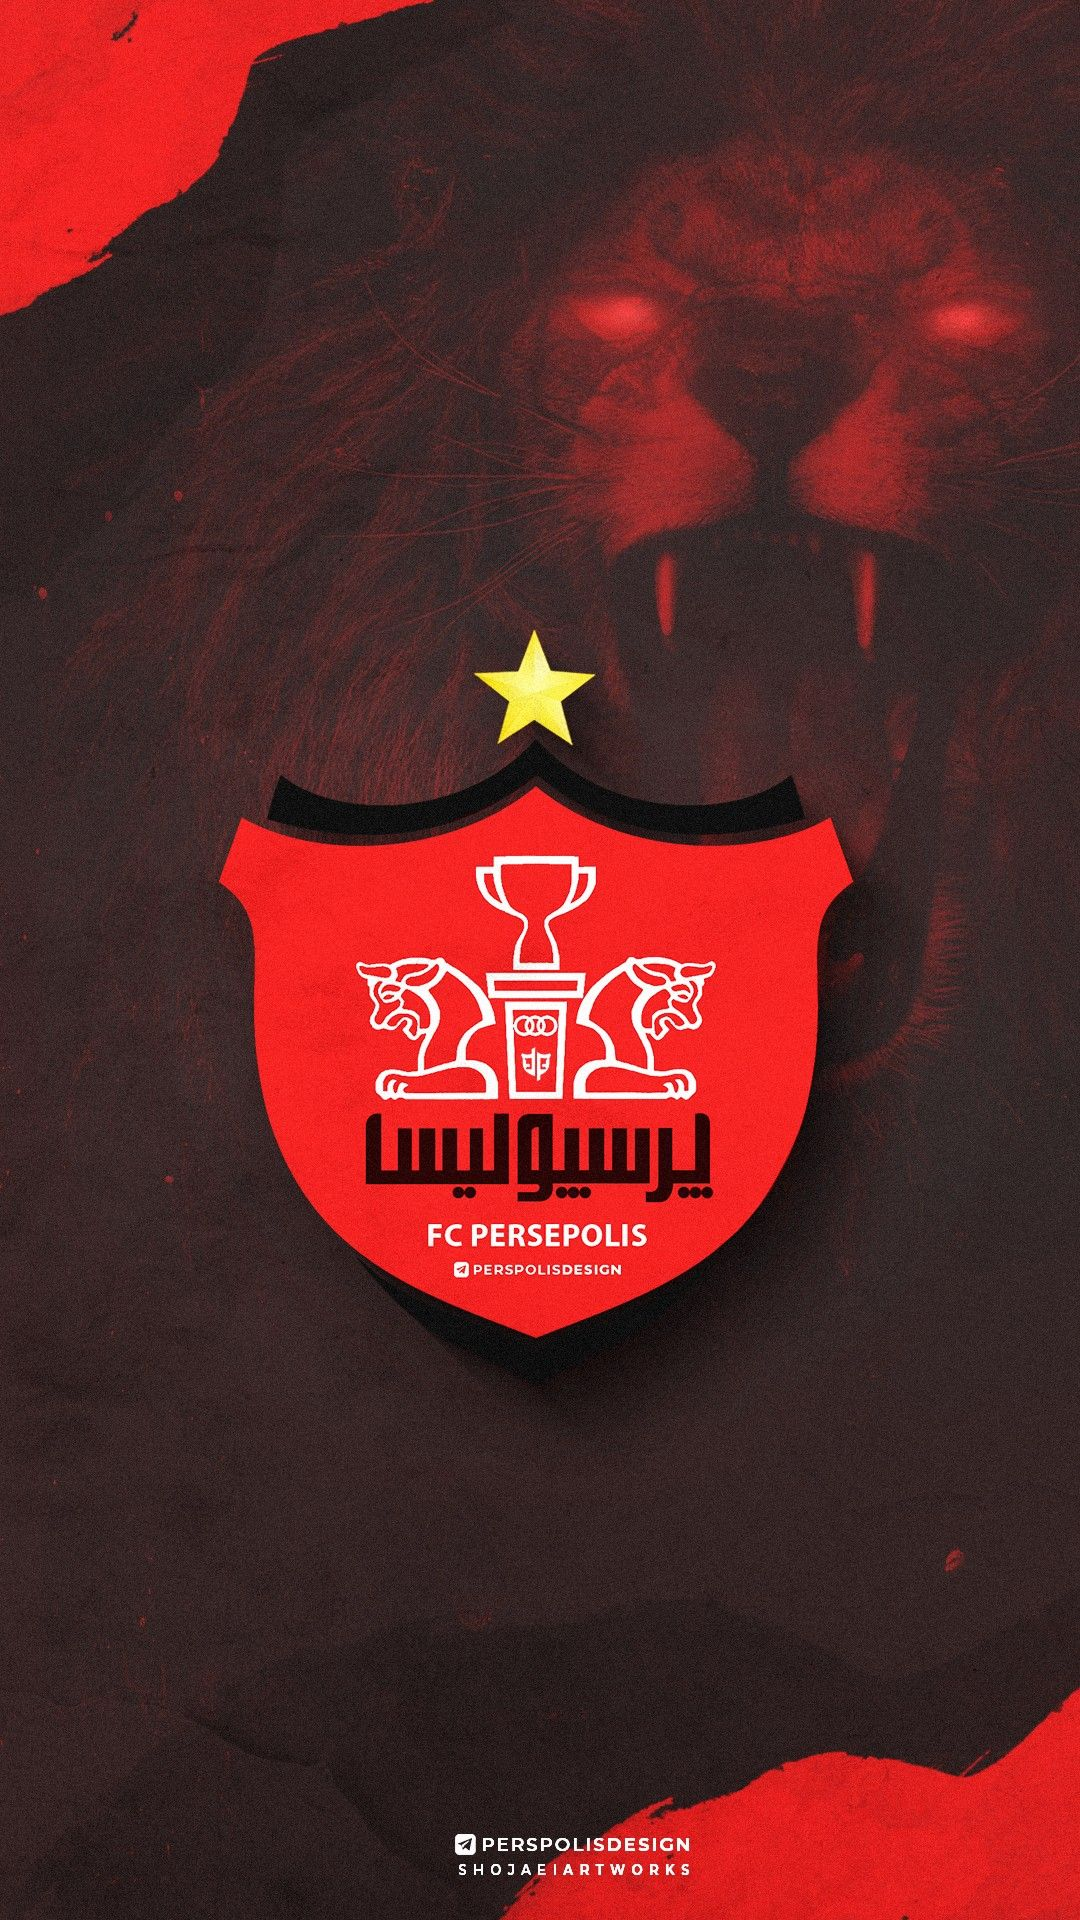 Perseplis Wallpaper In 2020 Team Wallpaper Football Wallpaper Football Poster